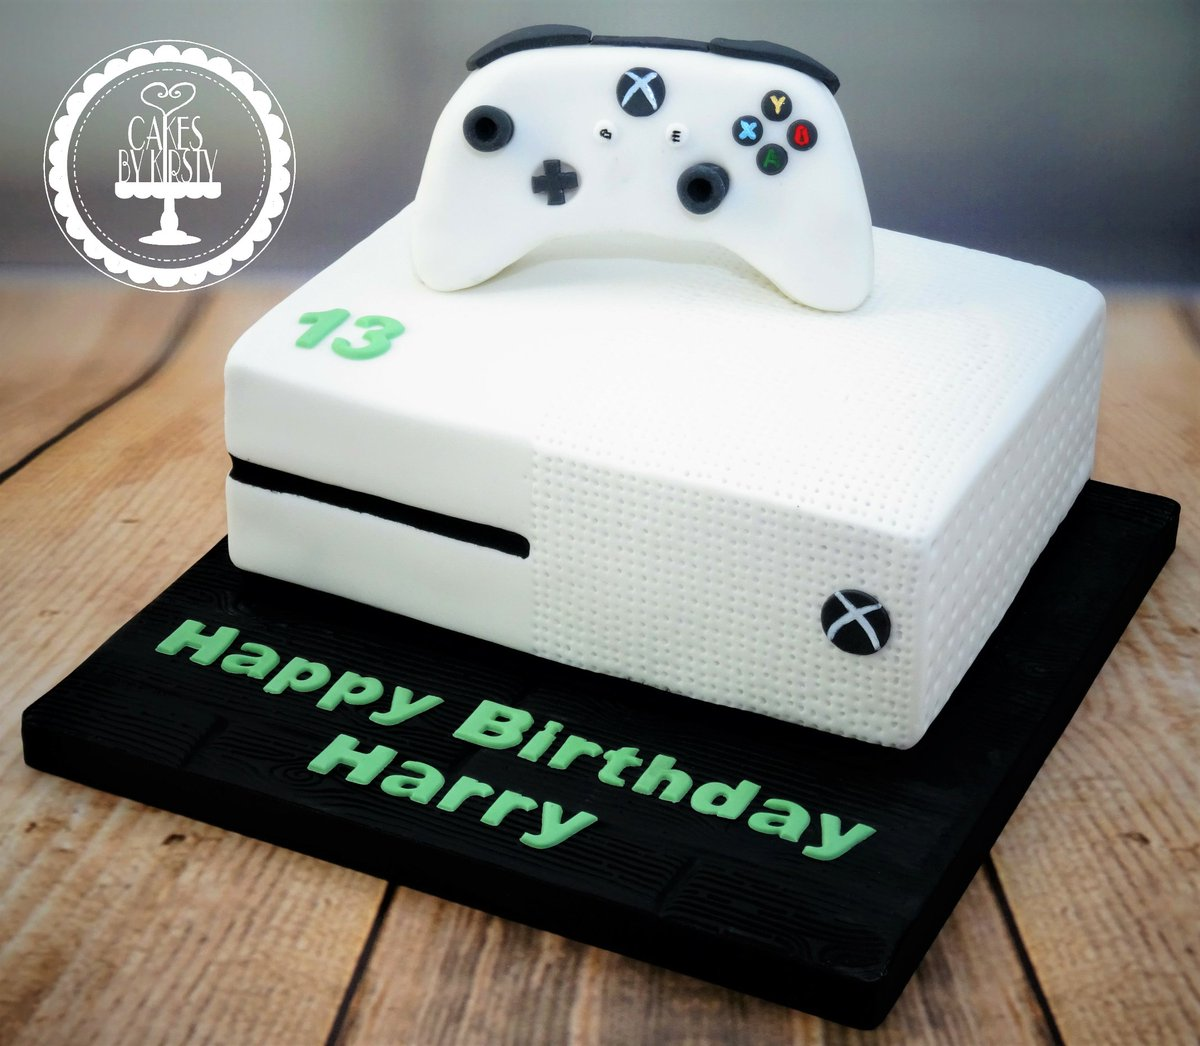 Cakes By Kirsty On Twitter Xbox Xboxone Xboxcontroller Gaming